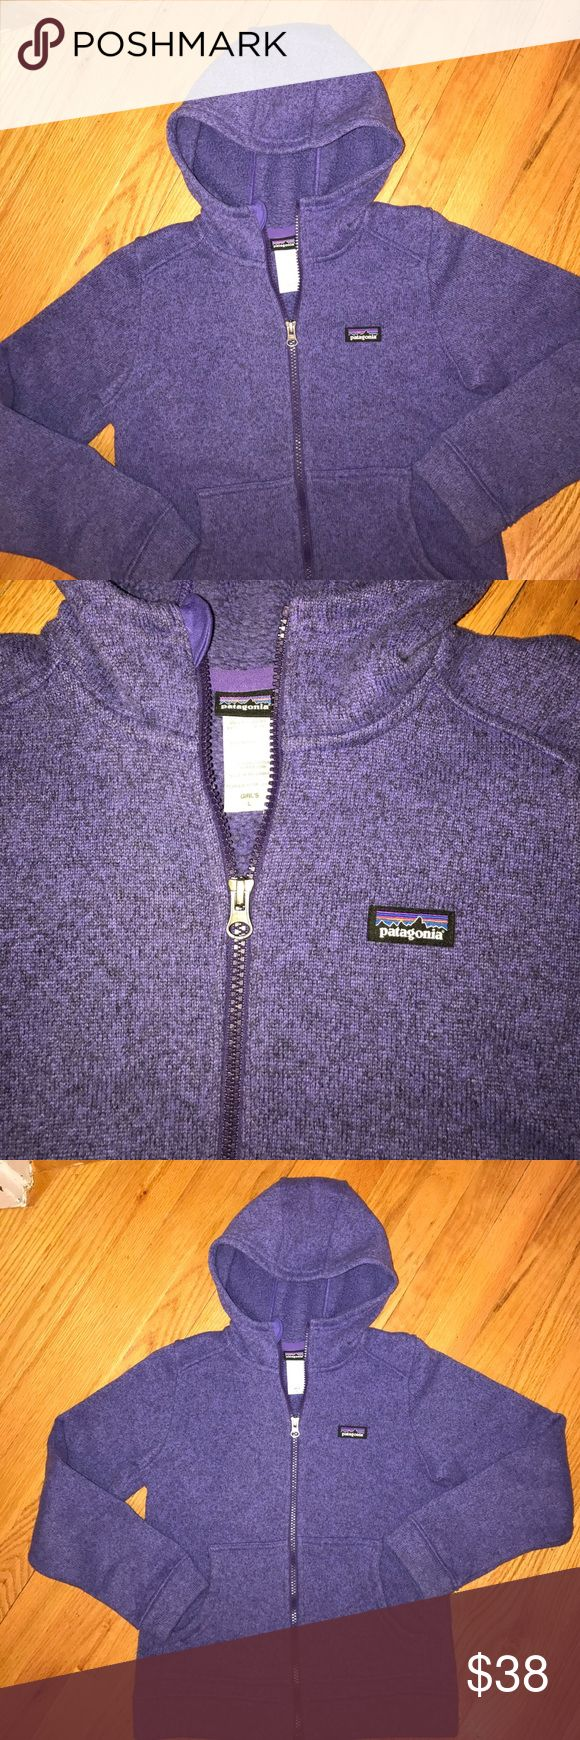 Girl's Patagonia Fleece Jacket Size Large (10-12) Girl's Patagonia Hooded Fleece Jacket Size Large (10-12). Great condition. 100% Polyester. Color is purple. Patagonia Jackets & Coats